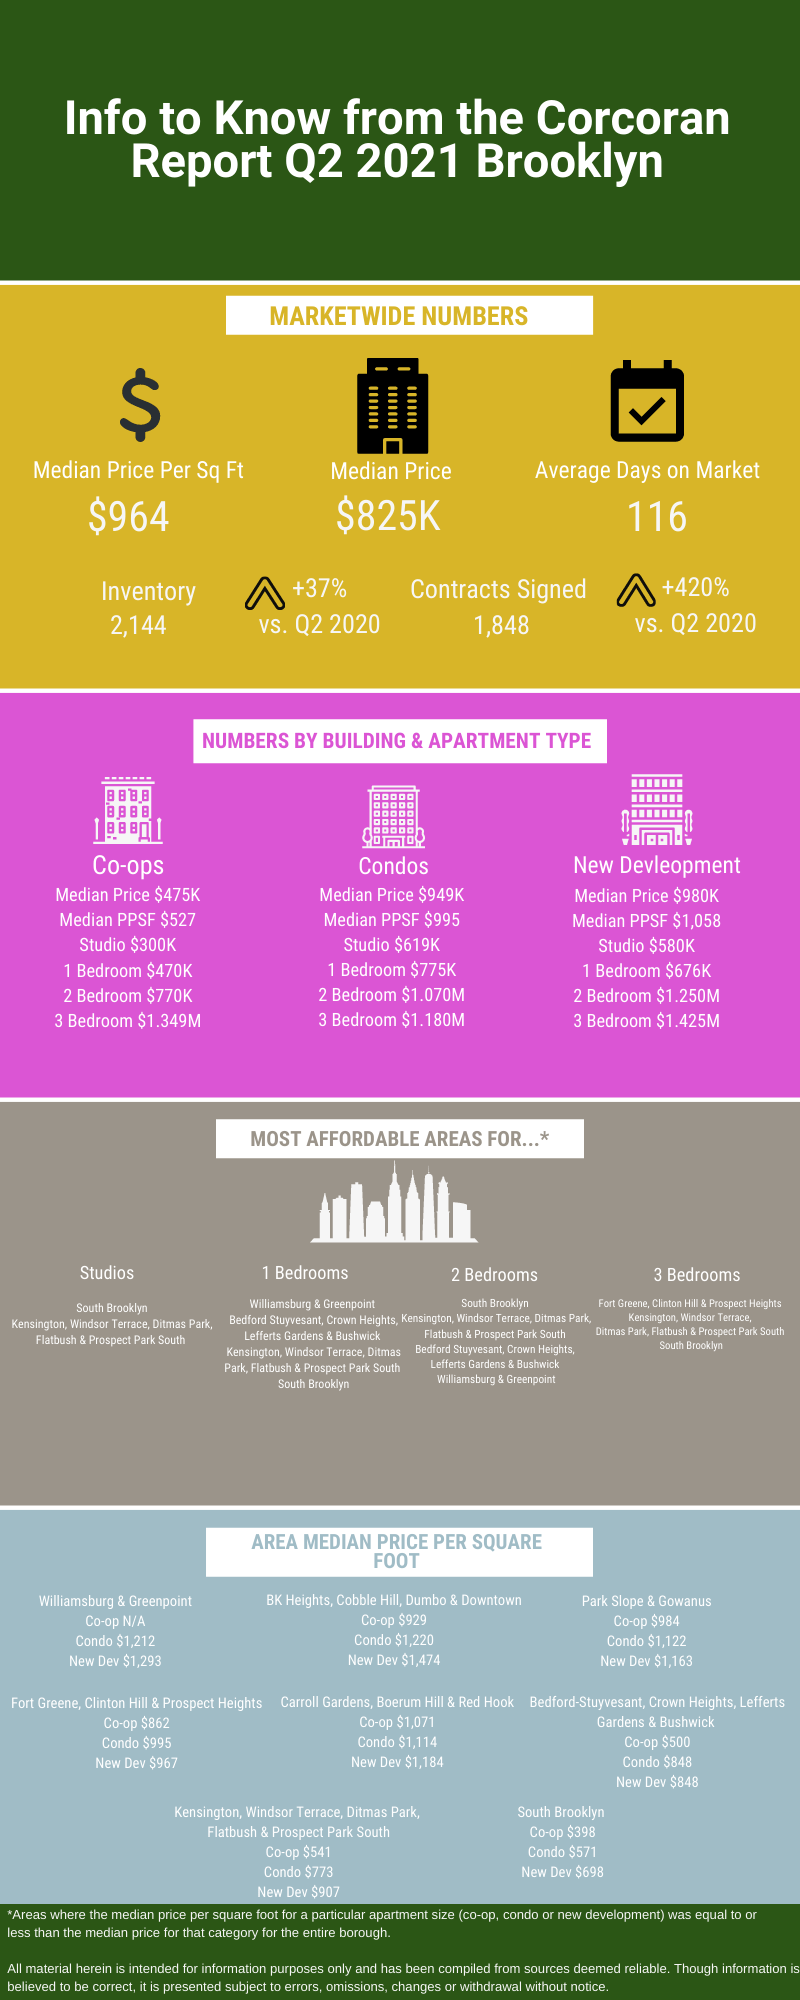 Infographic showing information from the Q2 2021 real estate market update from Corcoran for Brooklyn